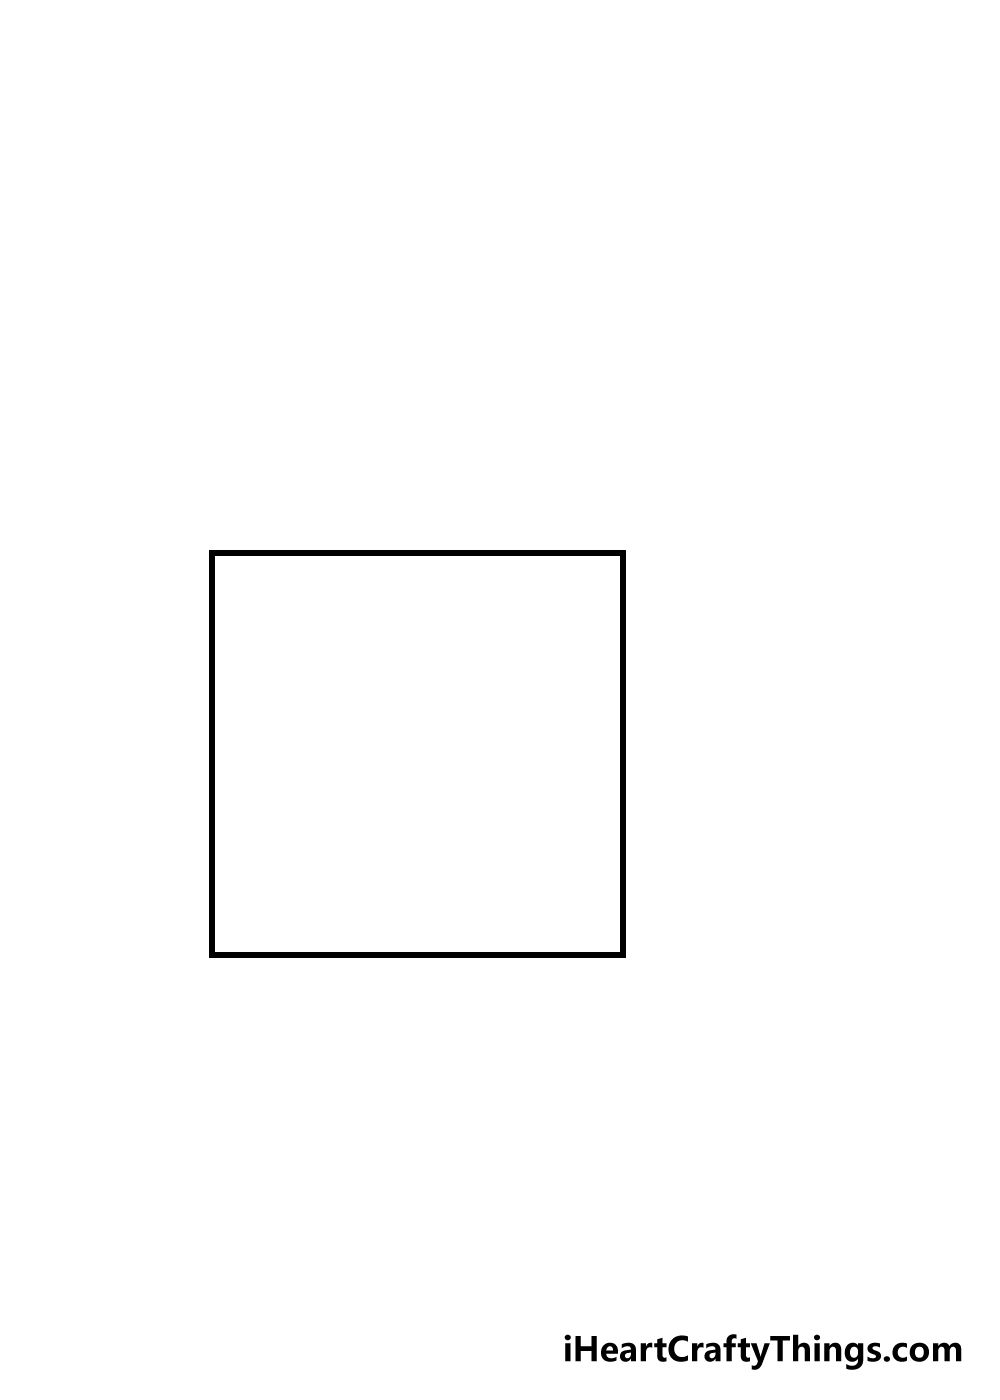 cube drawing step 1